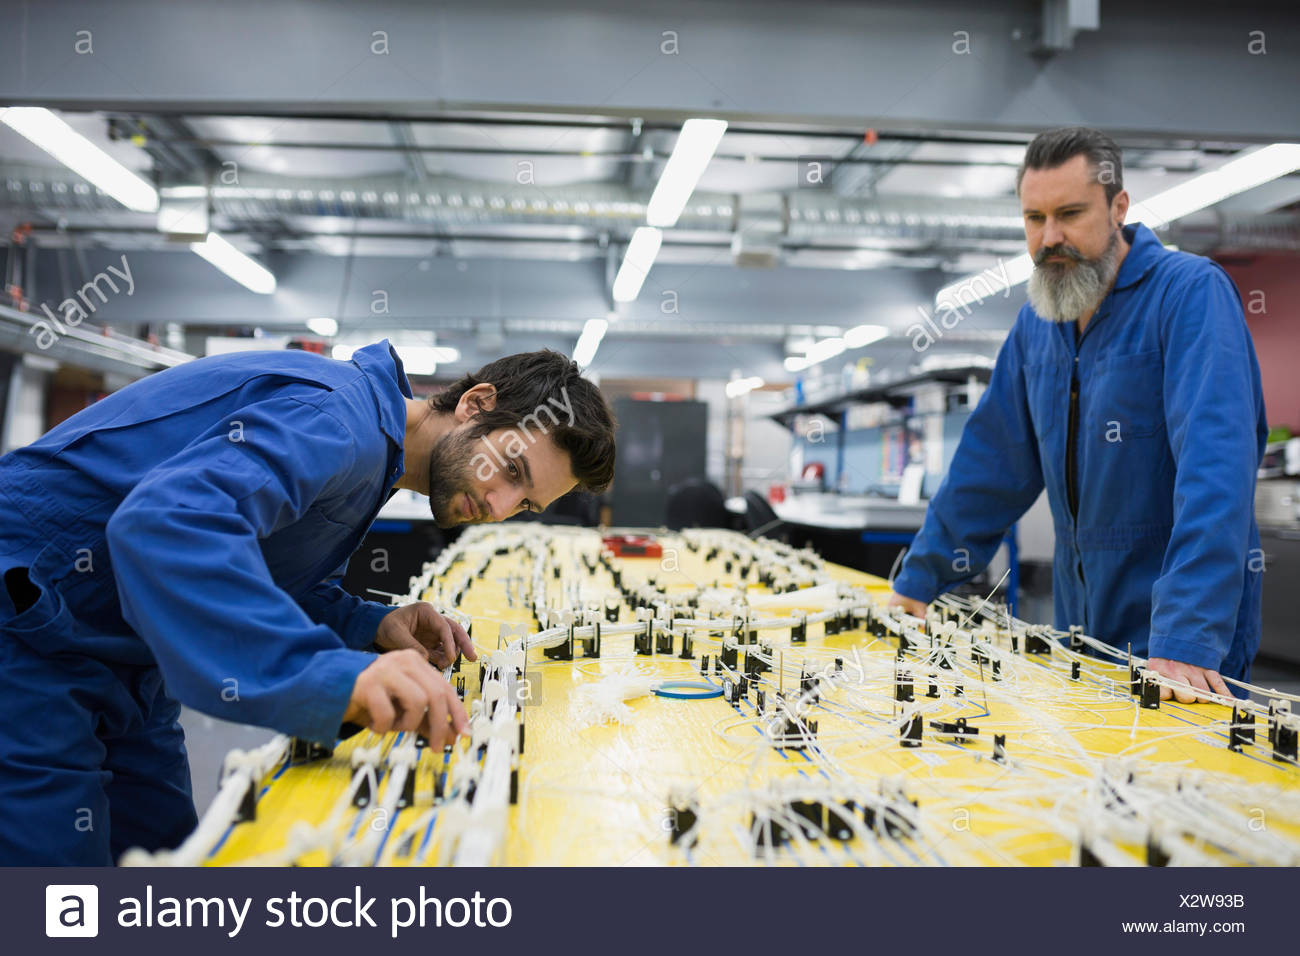 hight resolution of wiring harness stock photos wiring harness stock images alamy wiring harness factory wiring harness factory